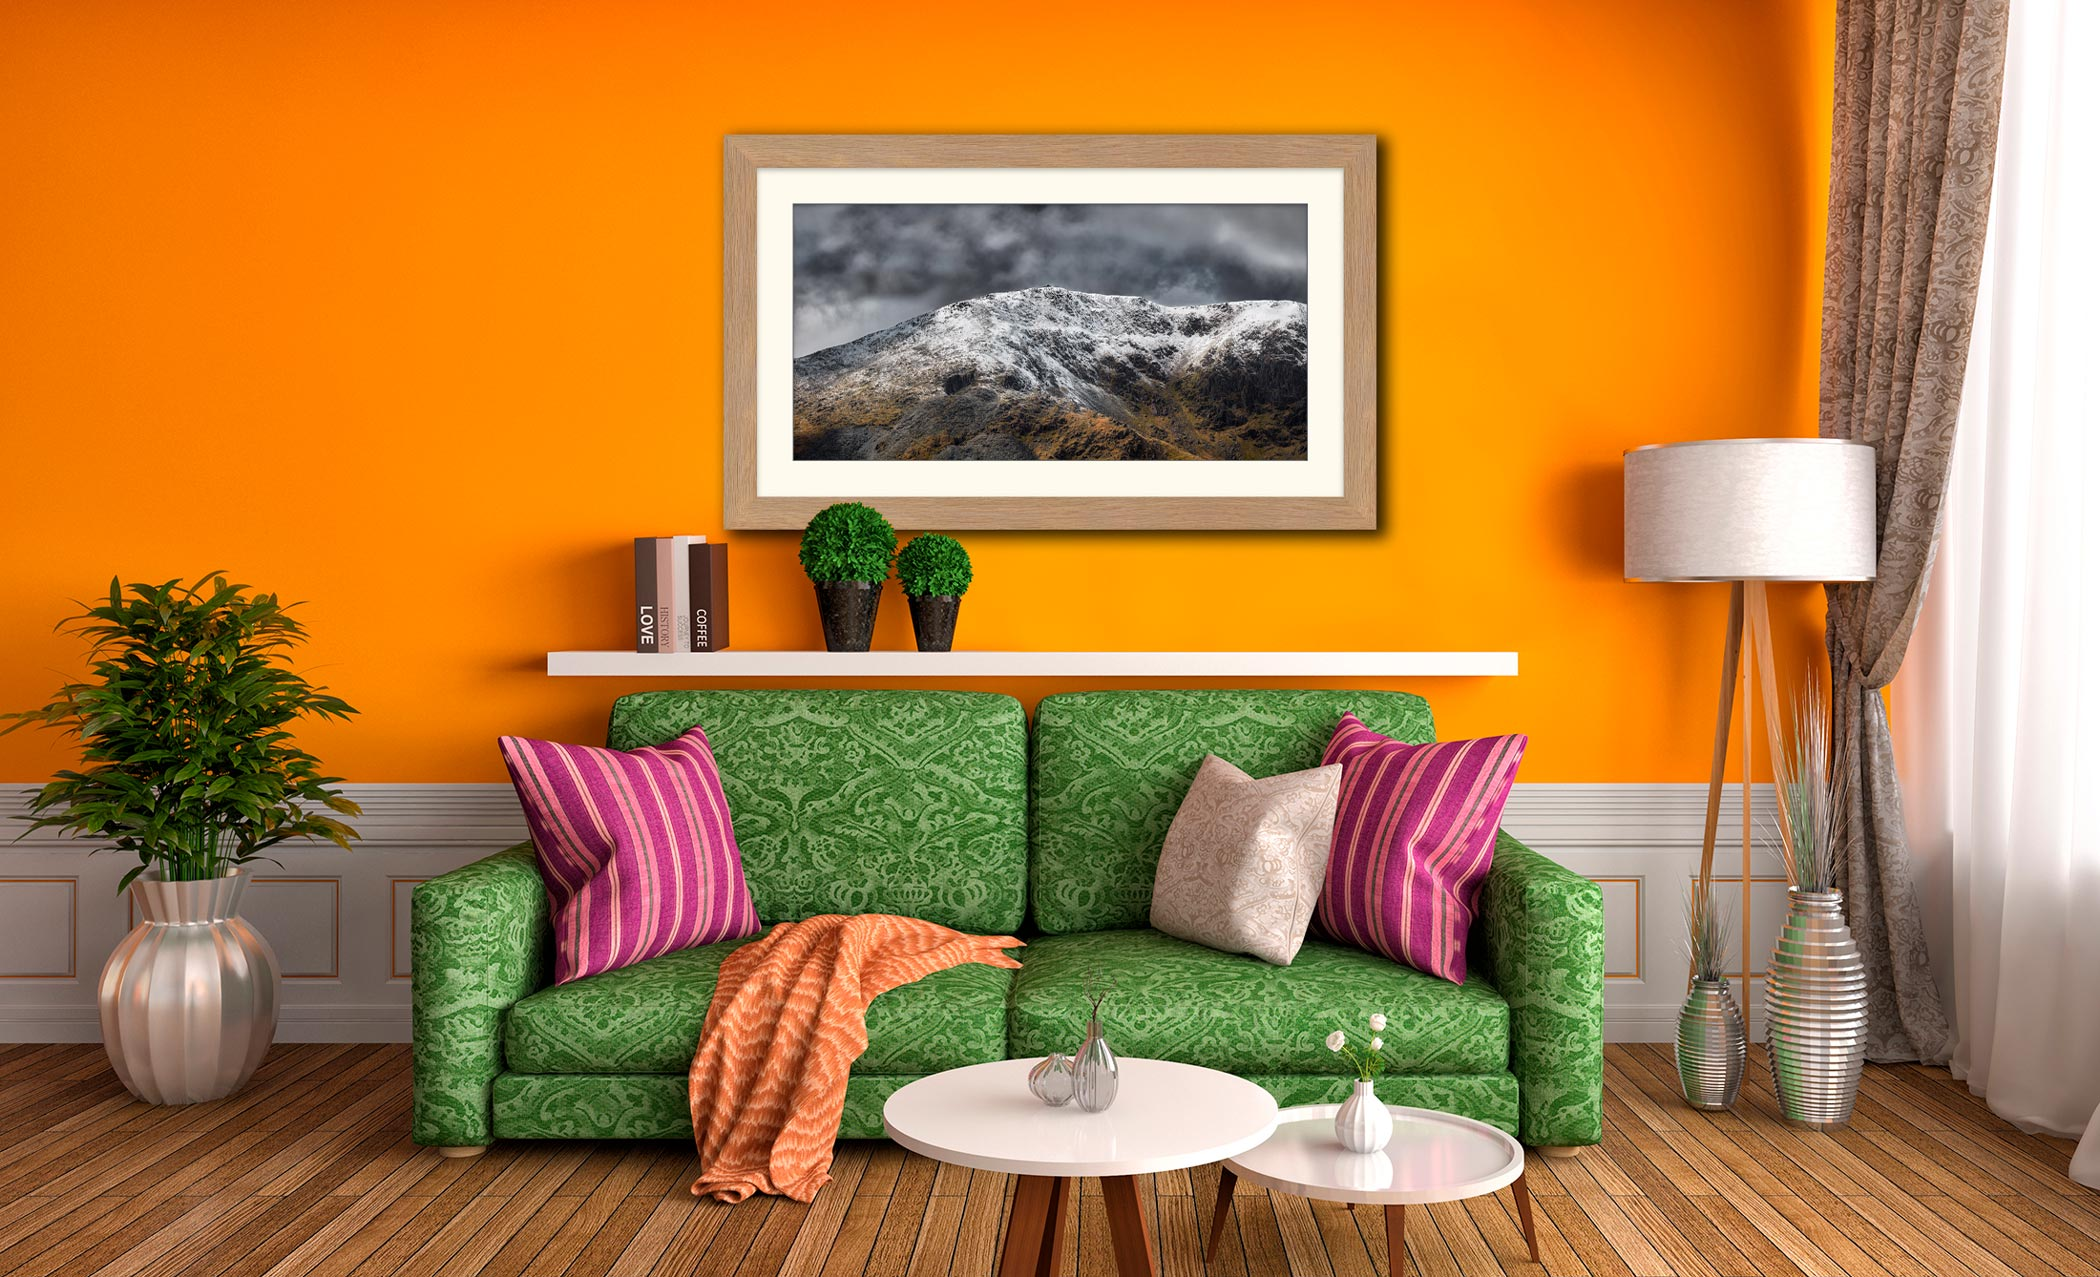 Coniston Old Man Summit - Framed Print with Mount on Wall